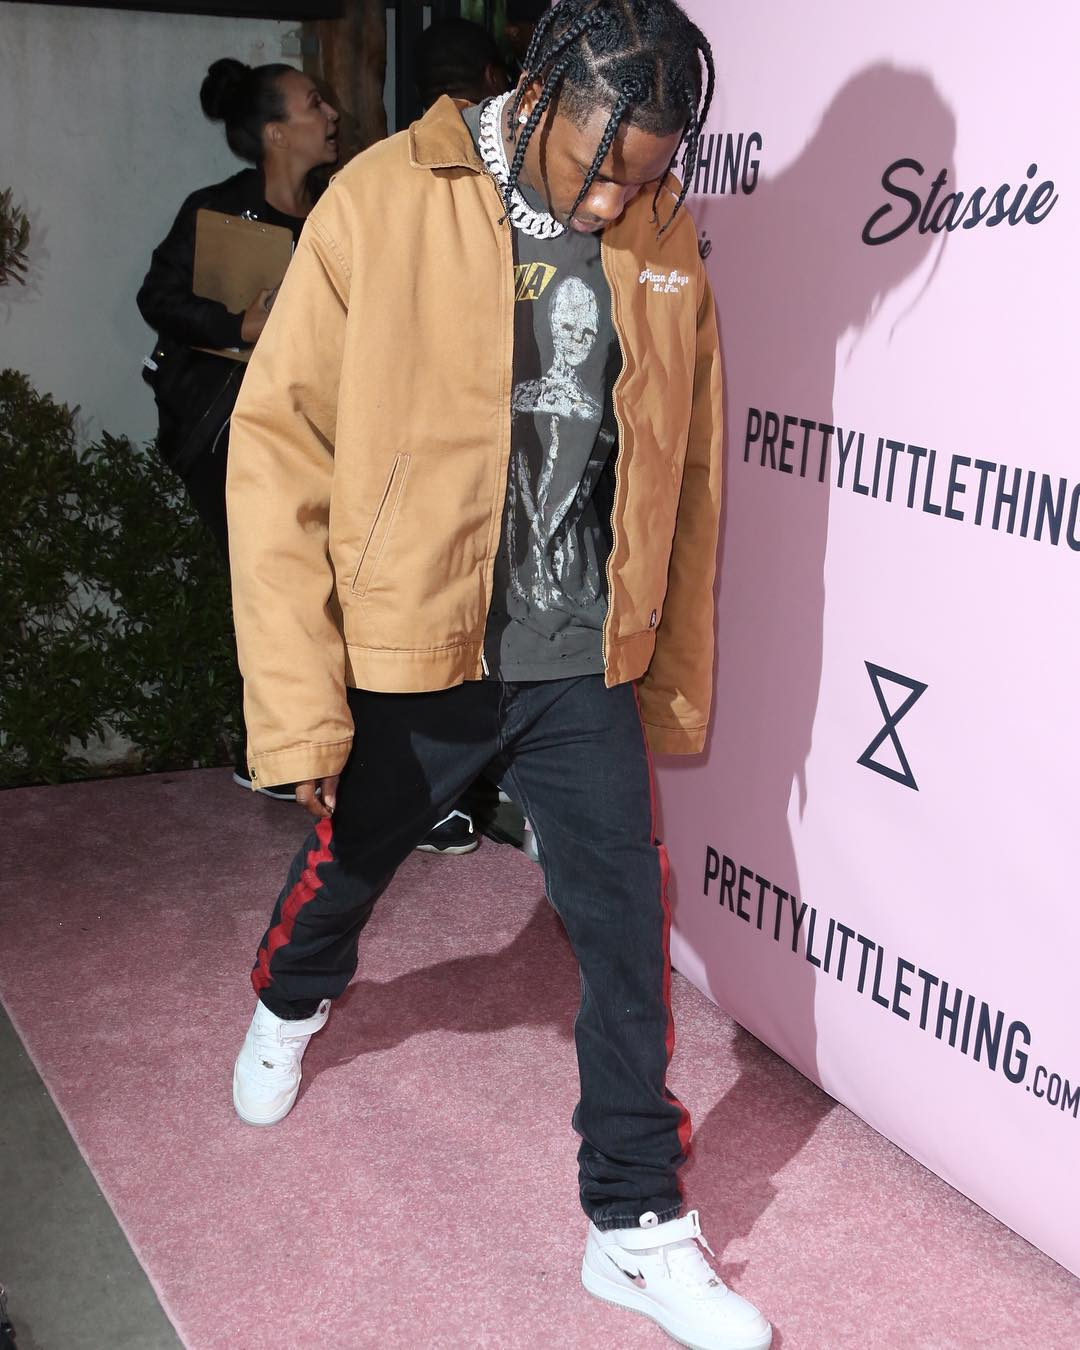 SPOTTED: Travis Scott in Pizza Boys Jacket, Balenciaga Jeans and Nike Sneakers